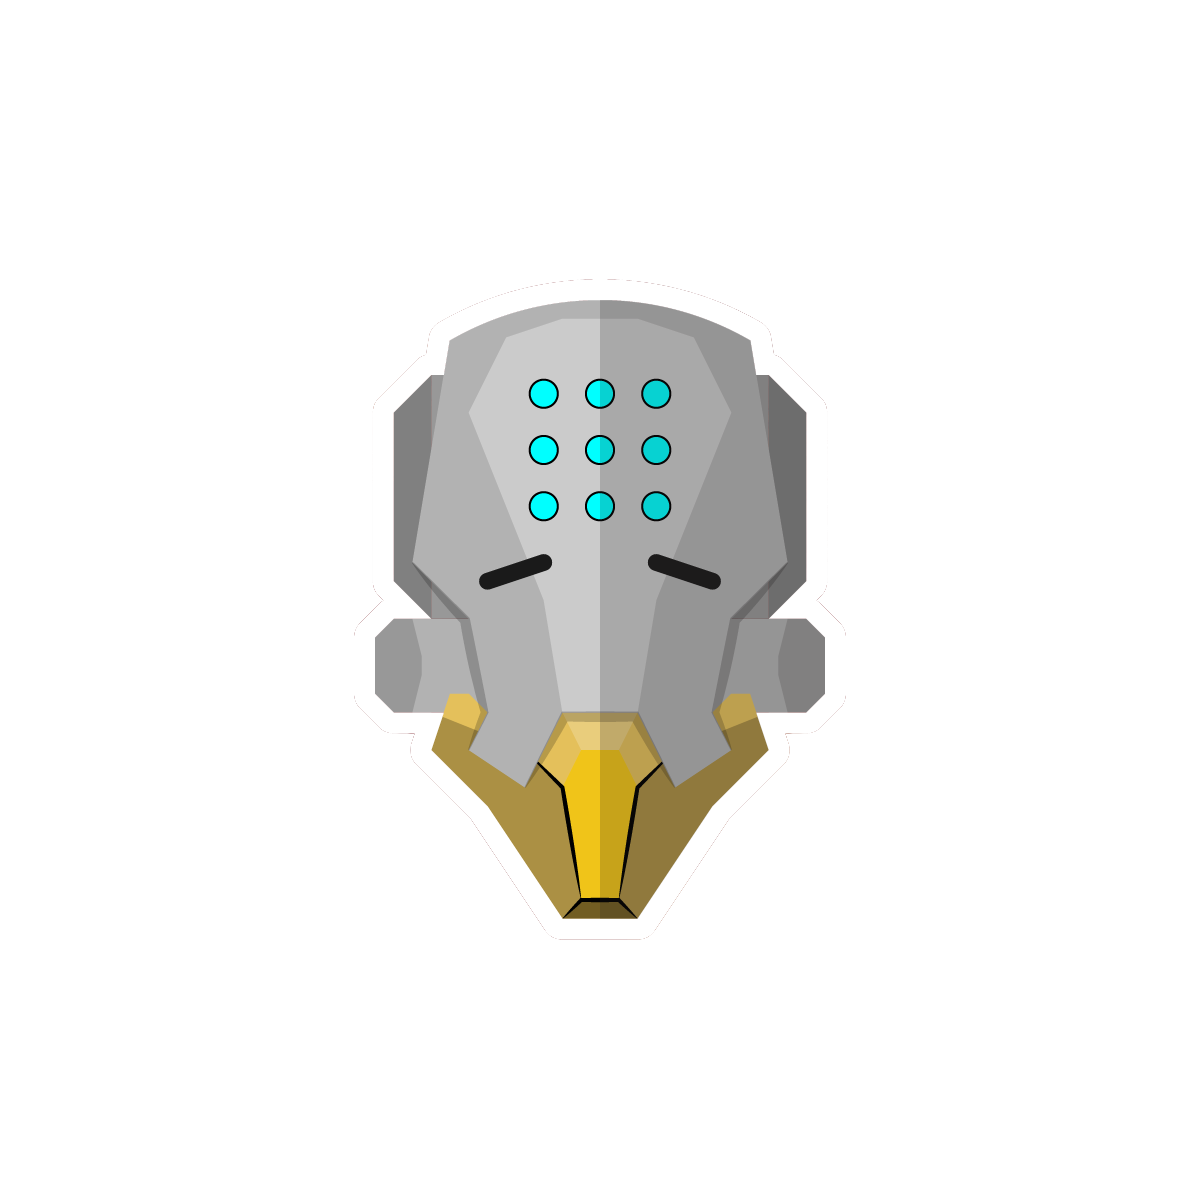 The Heroes Of Overwatch Sticker Pack messages sticker-9